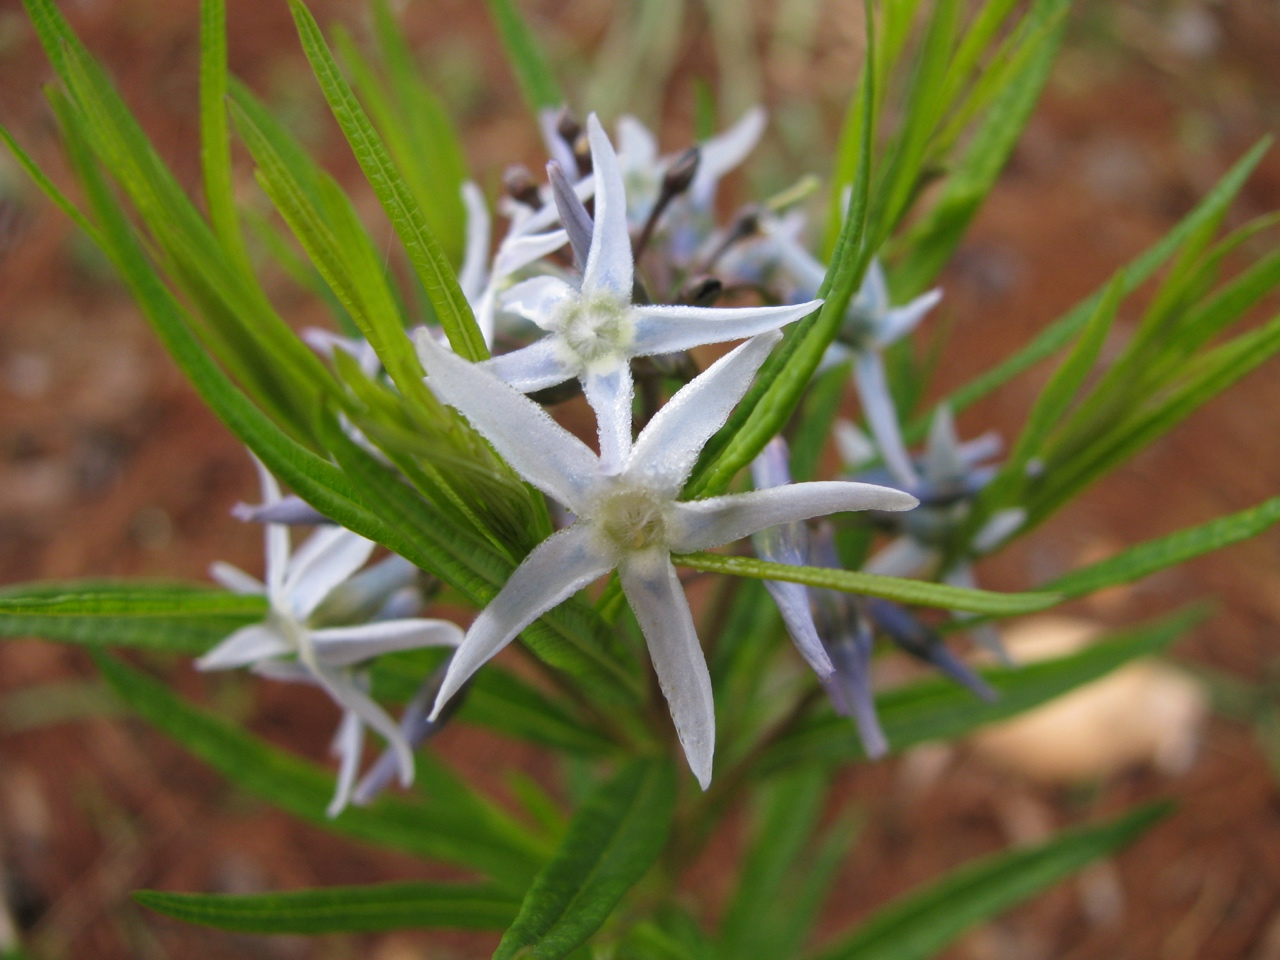 The Scientific Name is Amsonia hubrichtii. You will likely hear them called Threadleaf Bluestar, Hubricht's Bluestar, Hubricht's Slimpod. This picture shows the Blue fragrant flowers in May of Amsonia hubrichtii